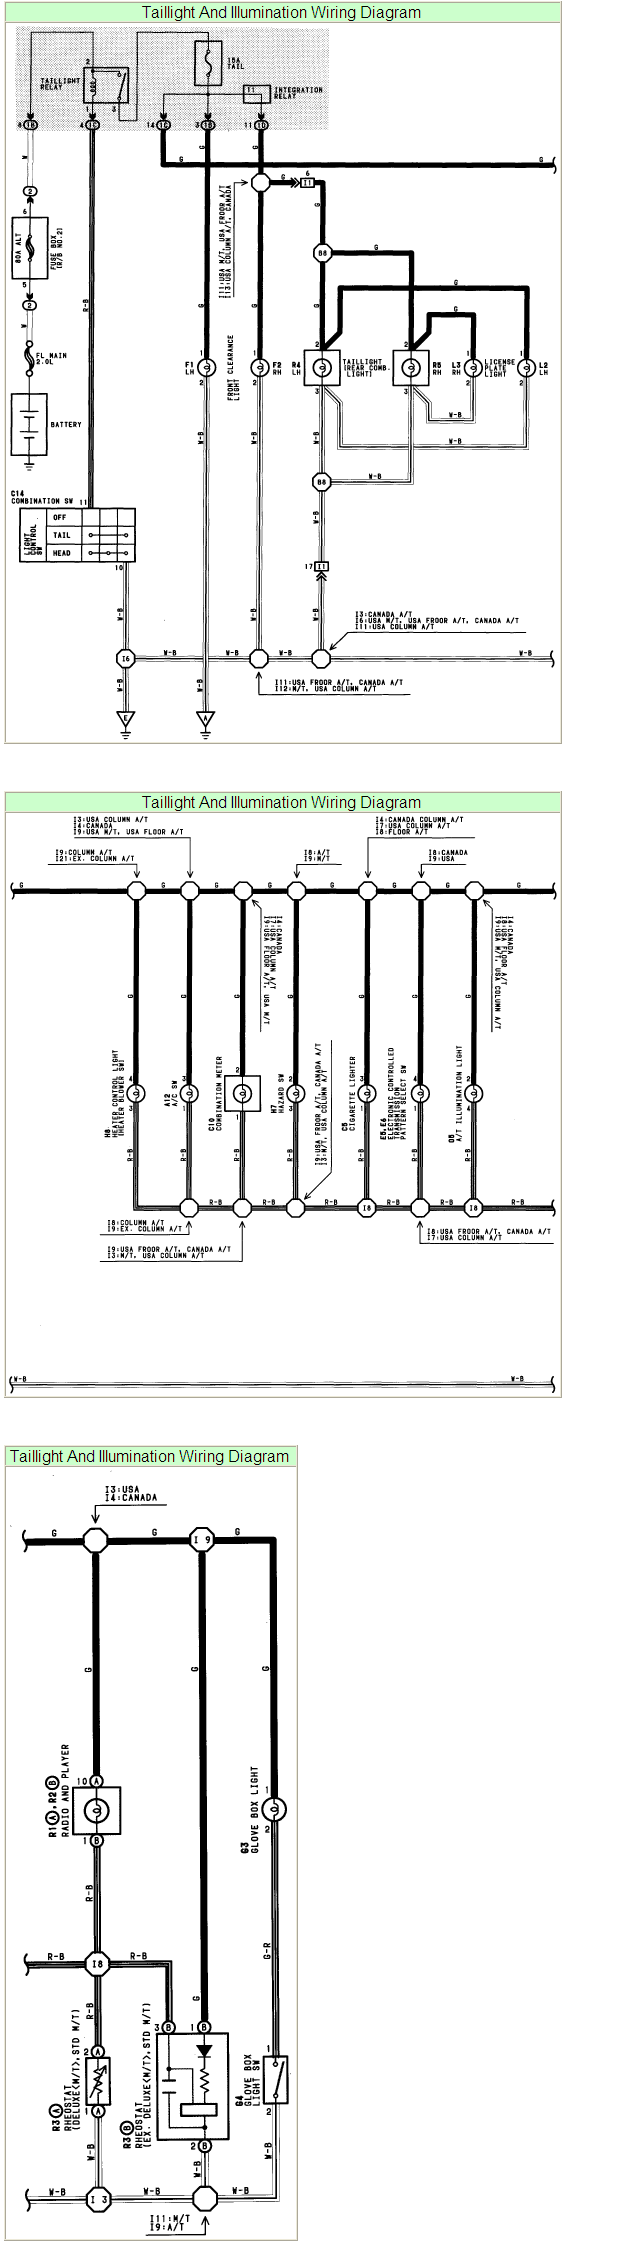 1994 Toyota Pickup Tail Lights Wiring Diagram Real 78 Purchased A Truck Previous Owner 1978